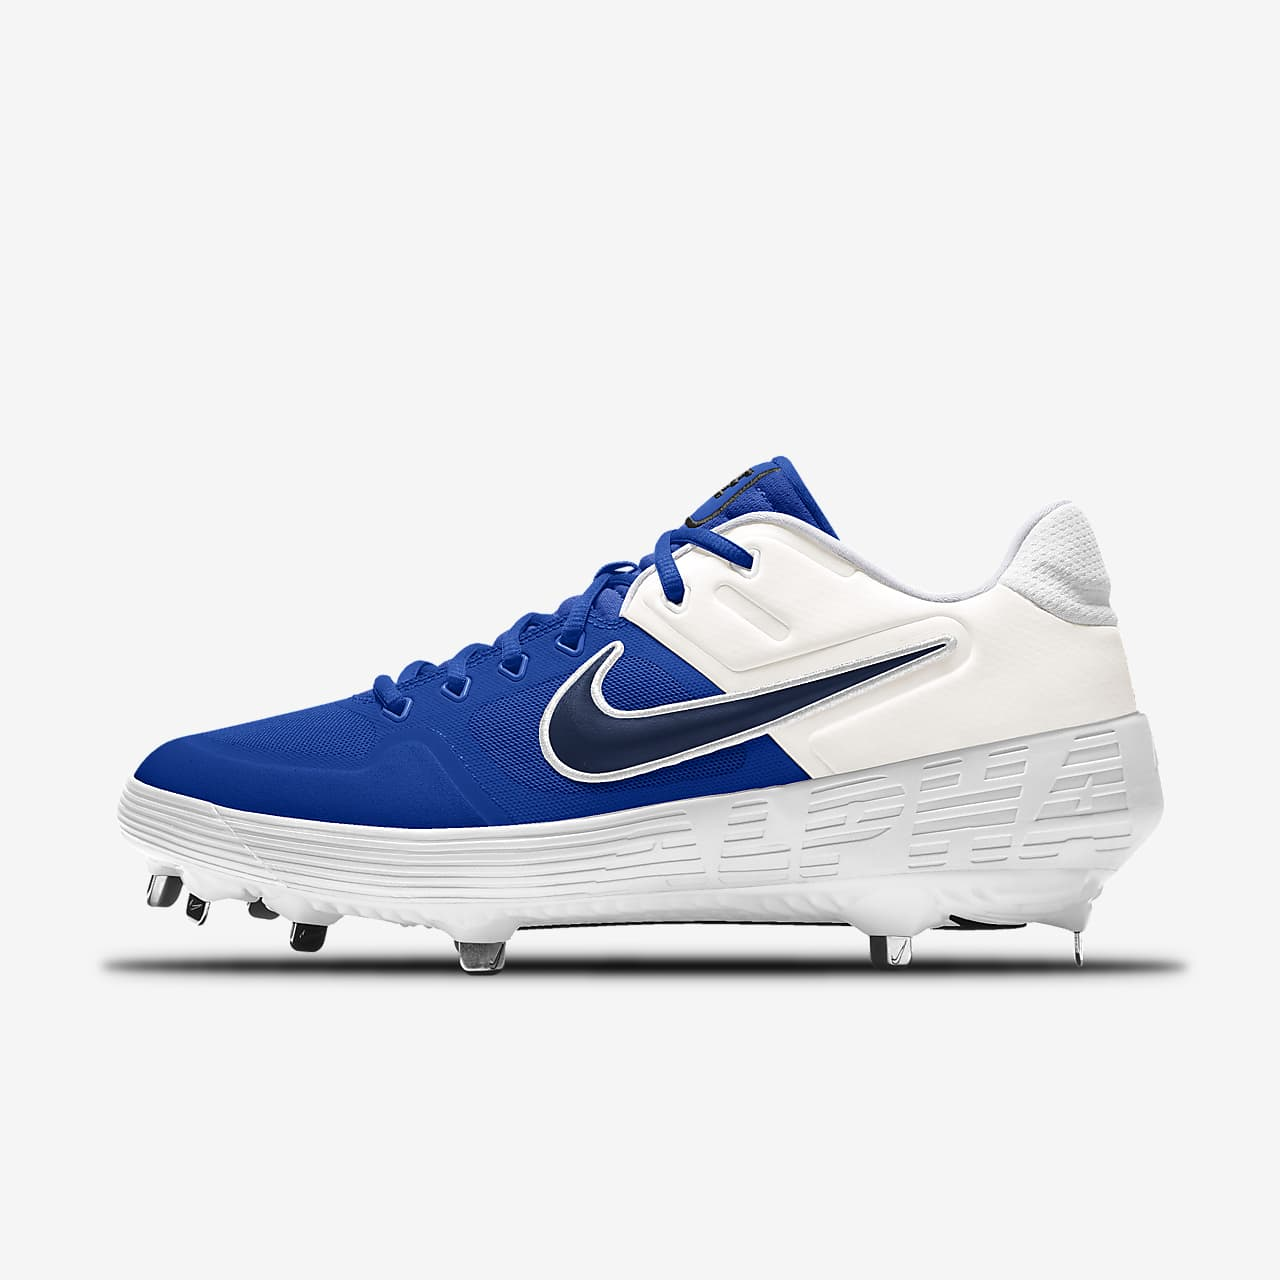 Chaussure de baseball à crampons personnalisable Nike Alpha Huarache Elite 2 Low By You